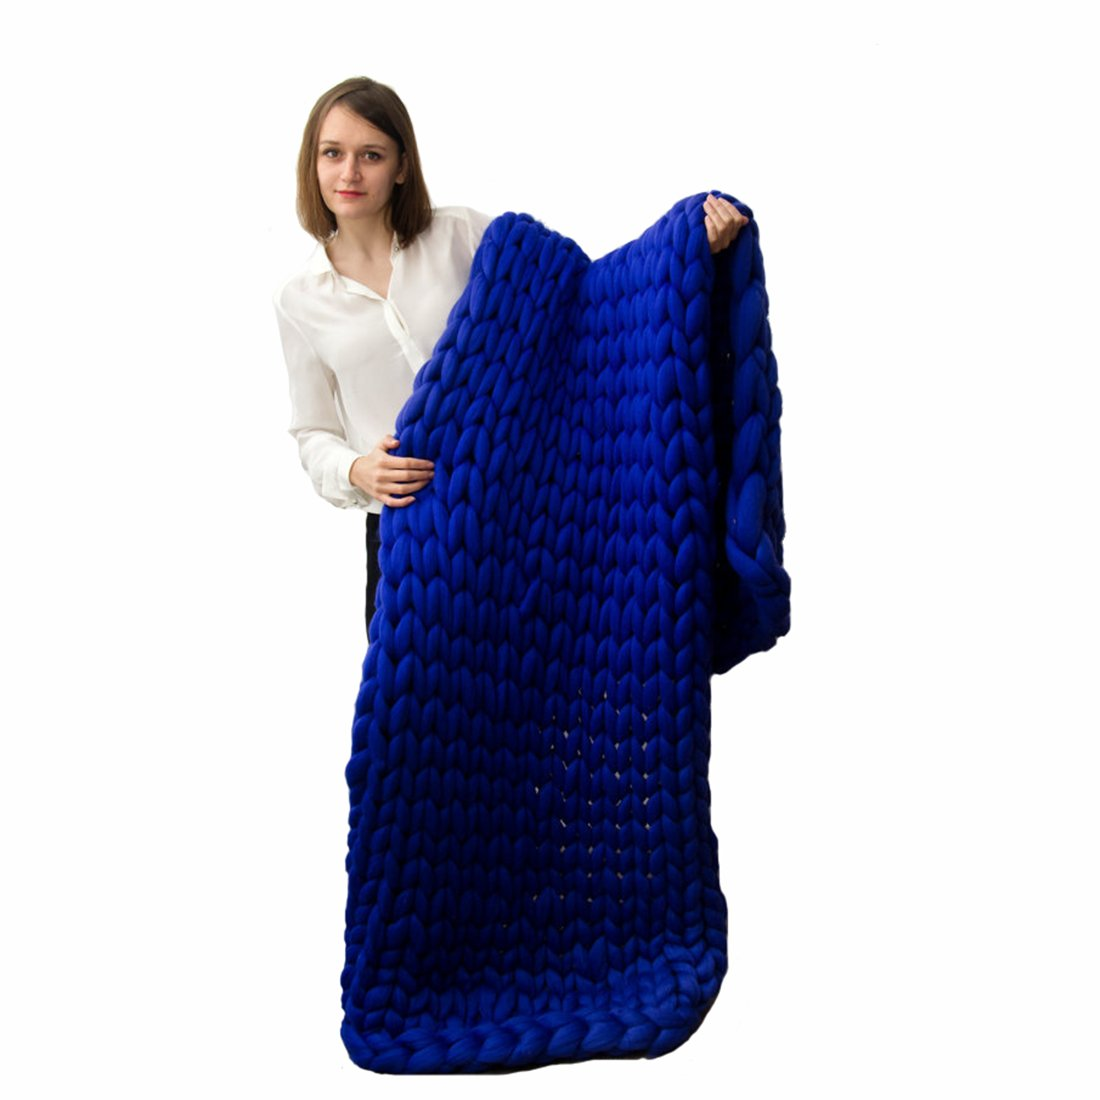 EASTSURE Knit Acrylic Blanket Hand-made Chunky Bed Sofa Throw Super Large,Sapphire Blue,47''x71'' by EASTSURE